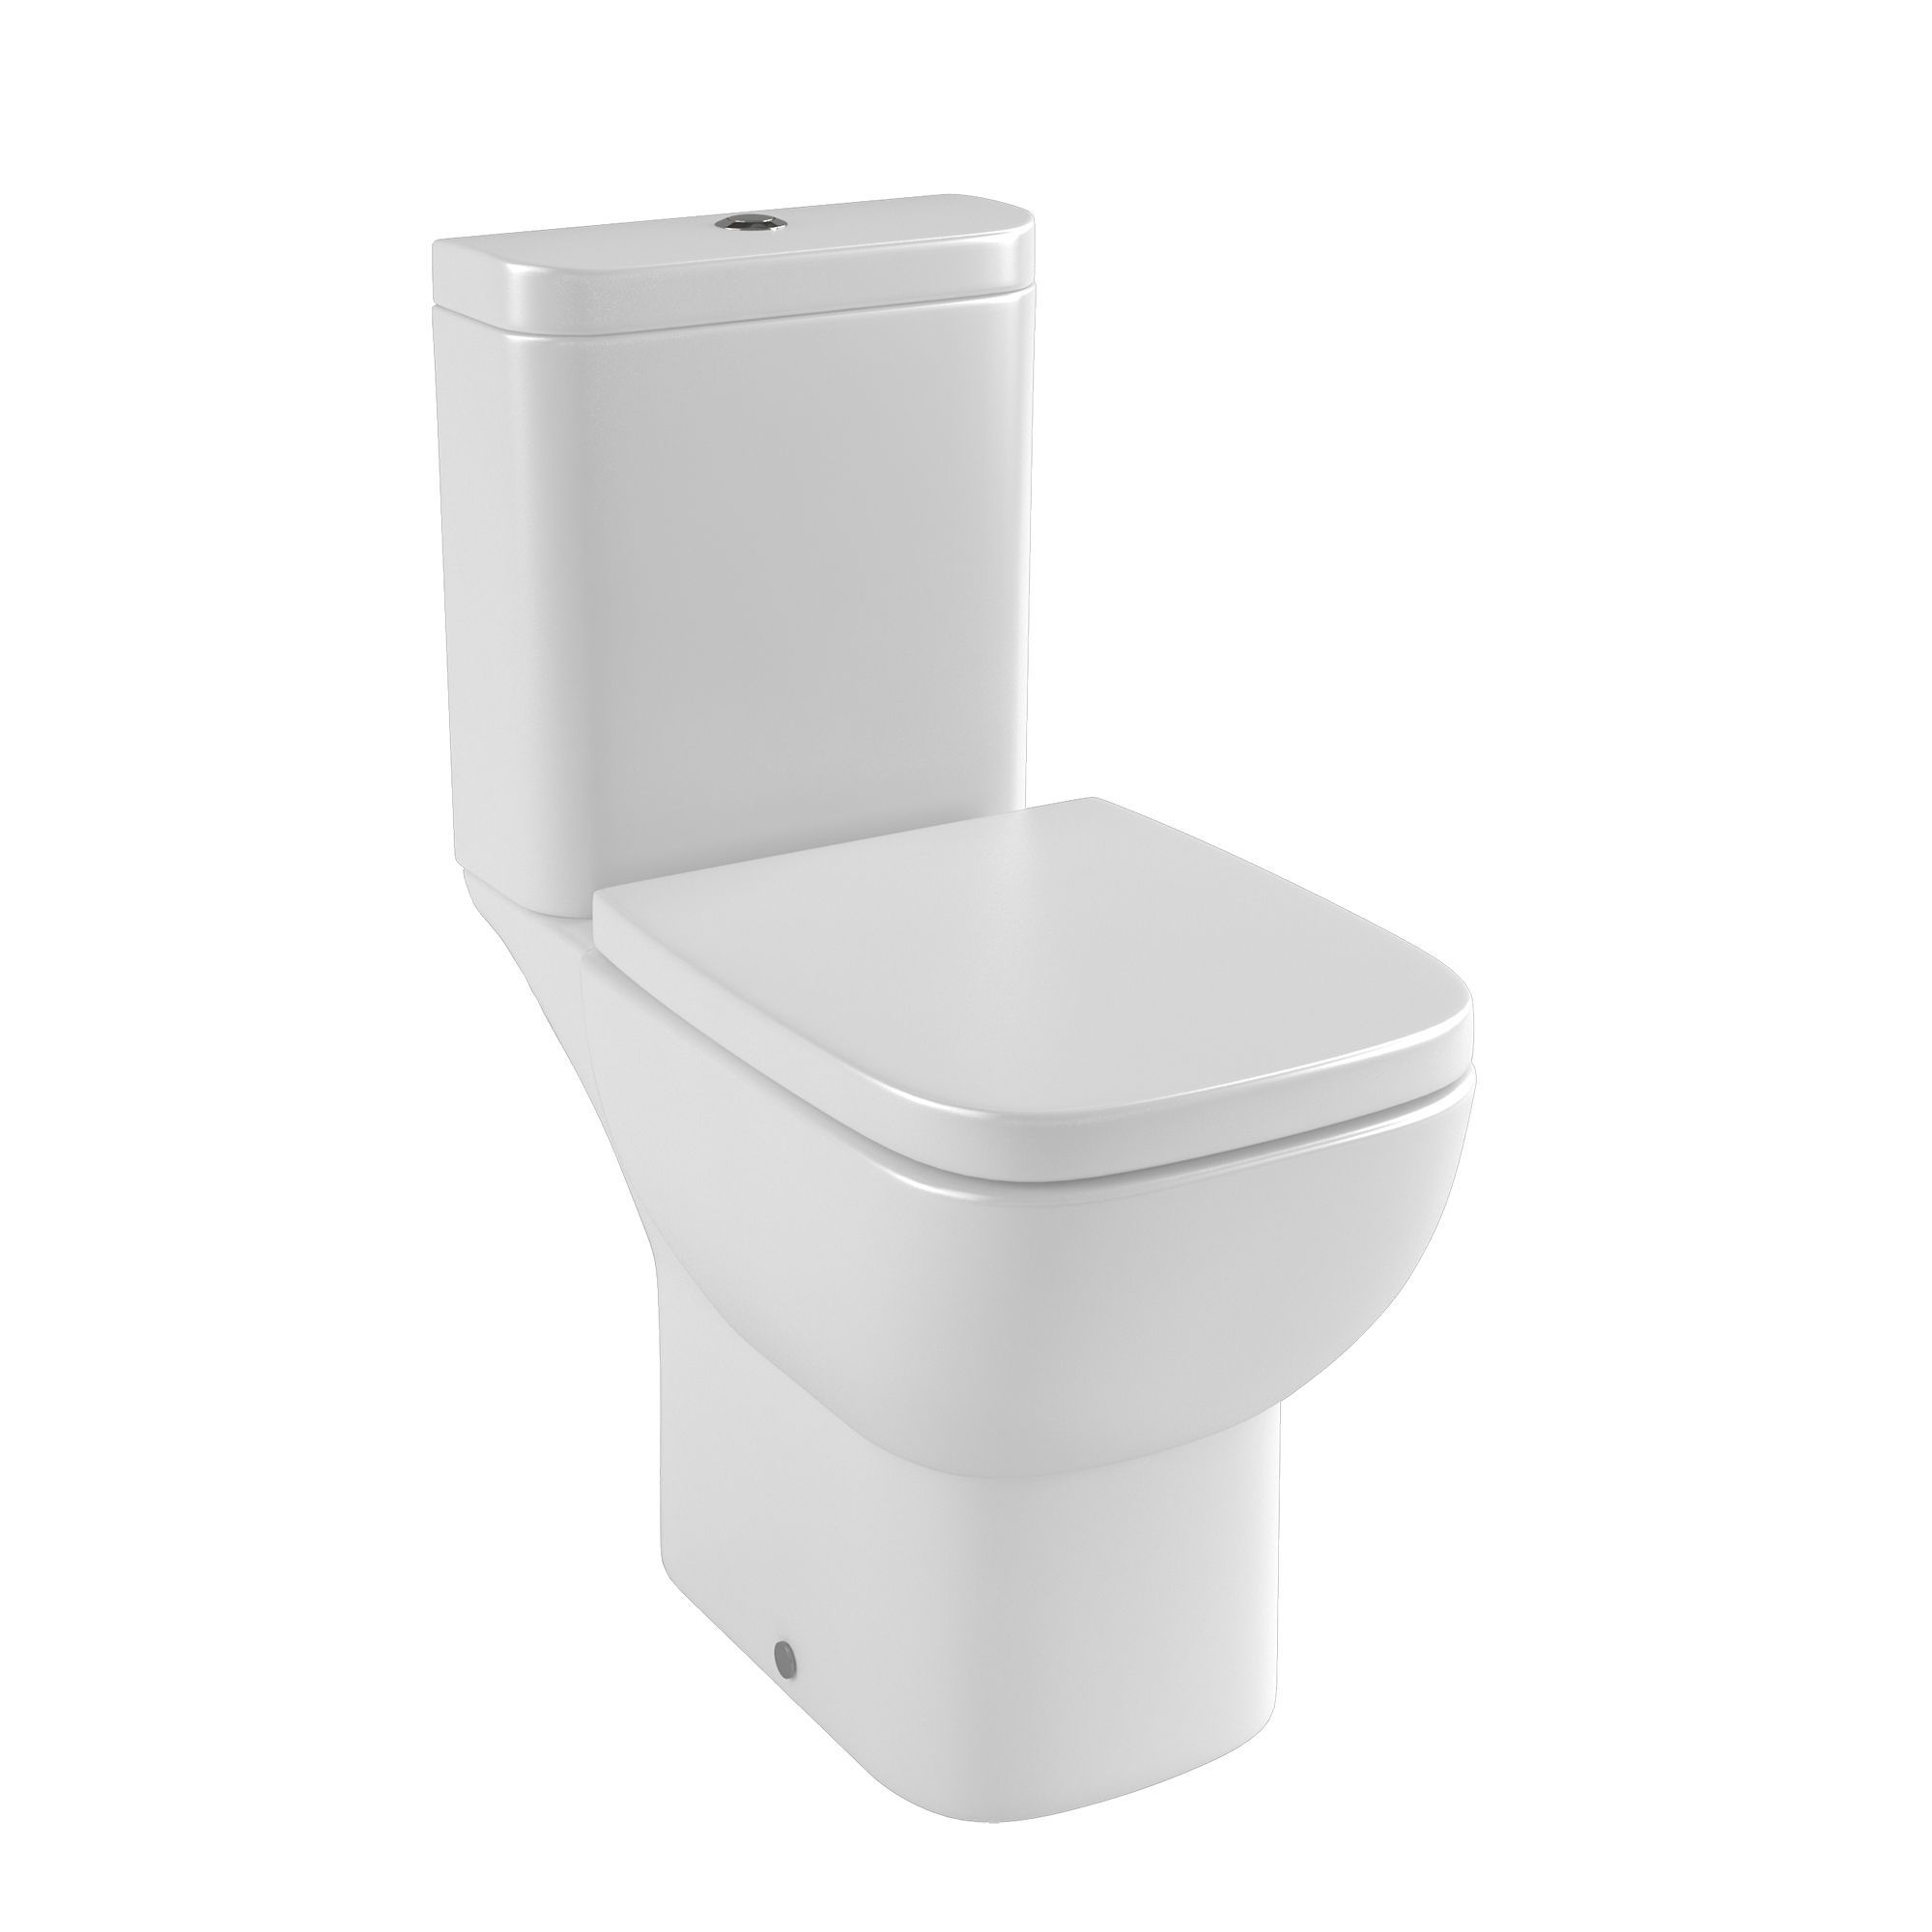 Cooke Lewis Santoro Contemporary Close Coupled Toilet With Soft Close Seat Departments Diy At B Q